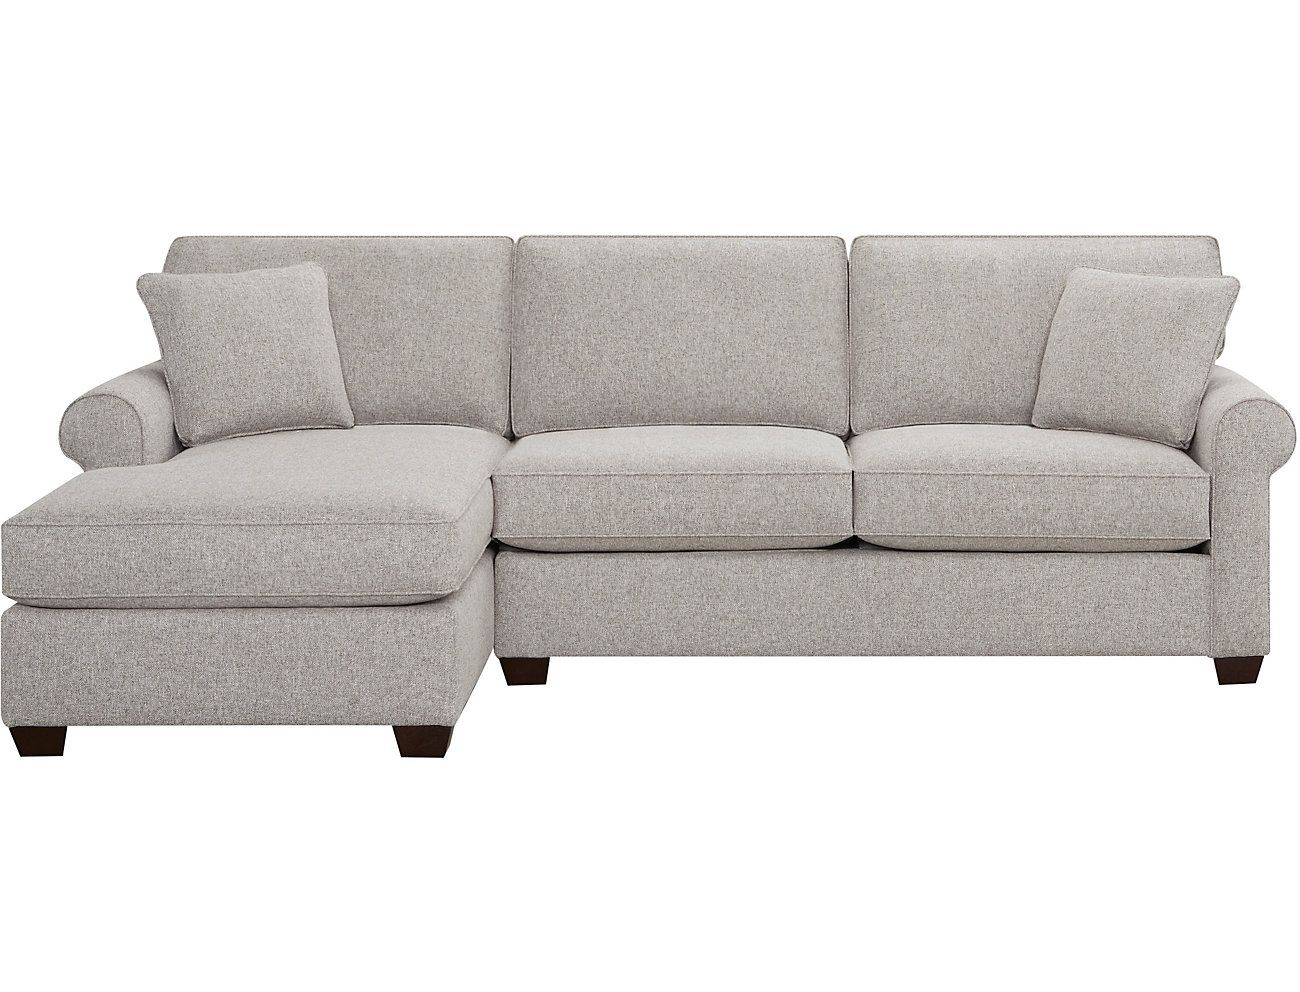 Best Art Van Sectional Couches Couch With Chaise Sectional 640 x 480